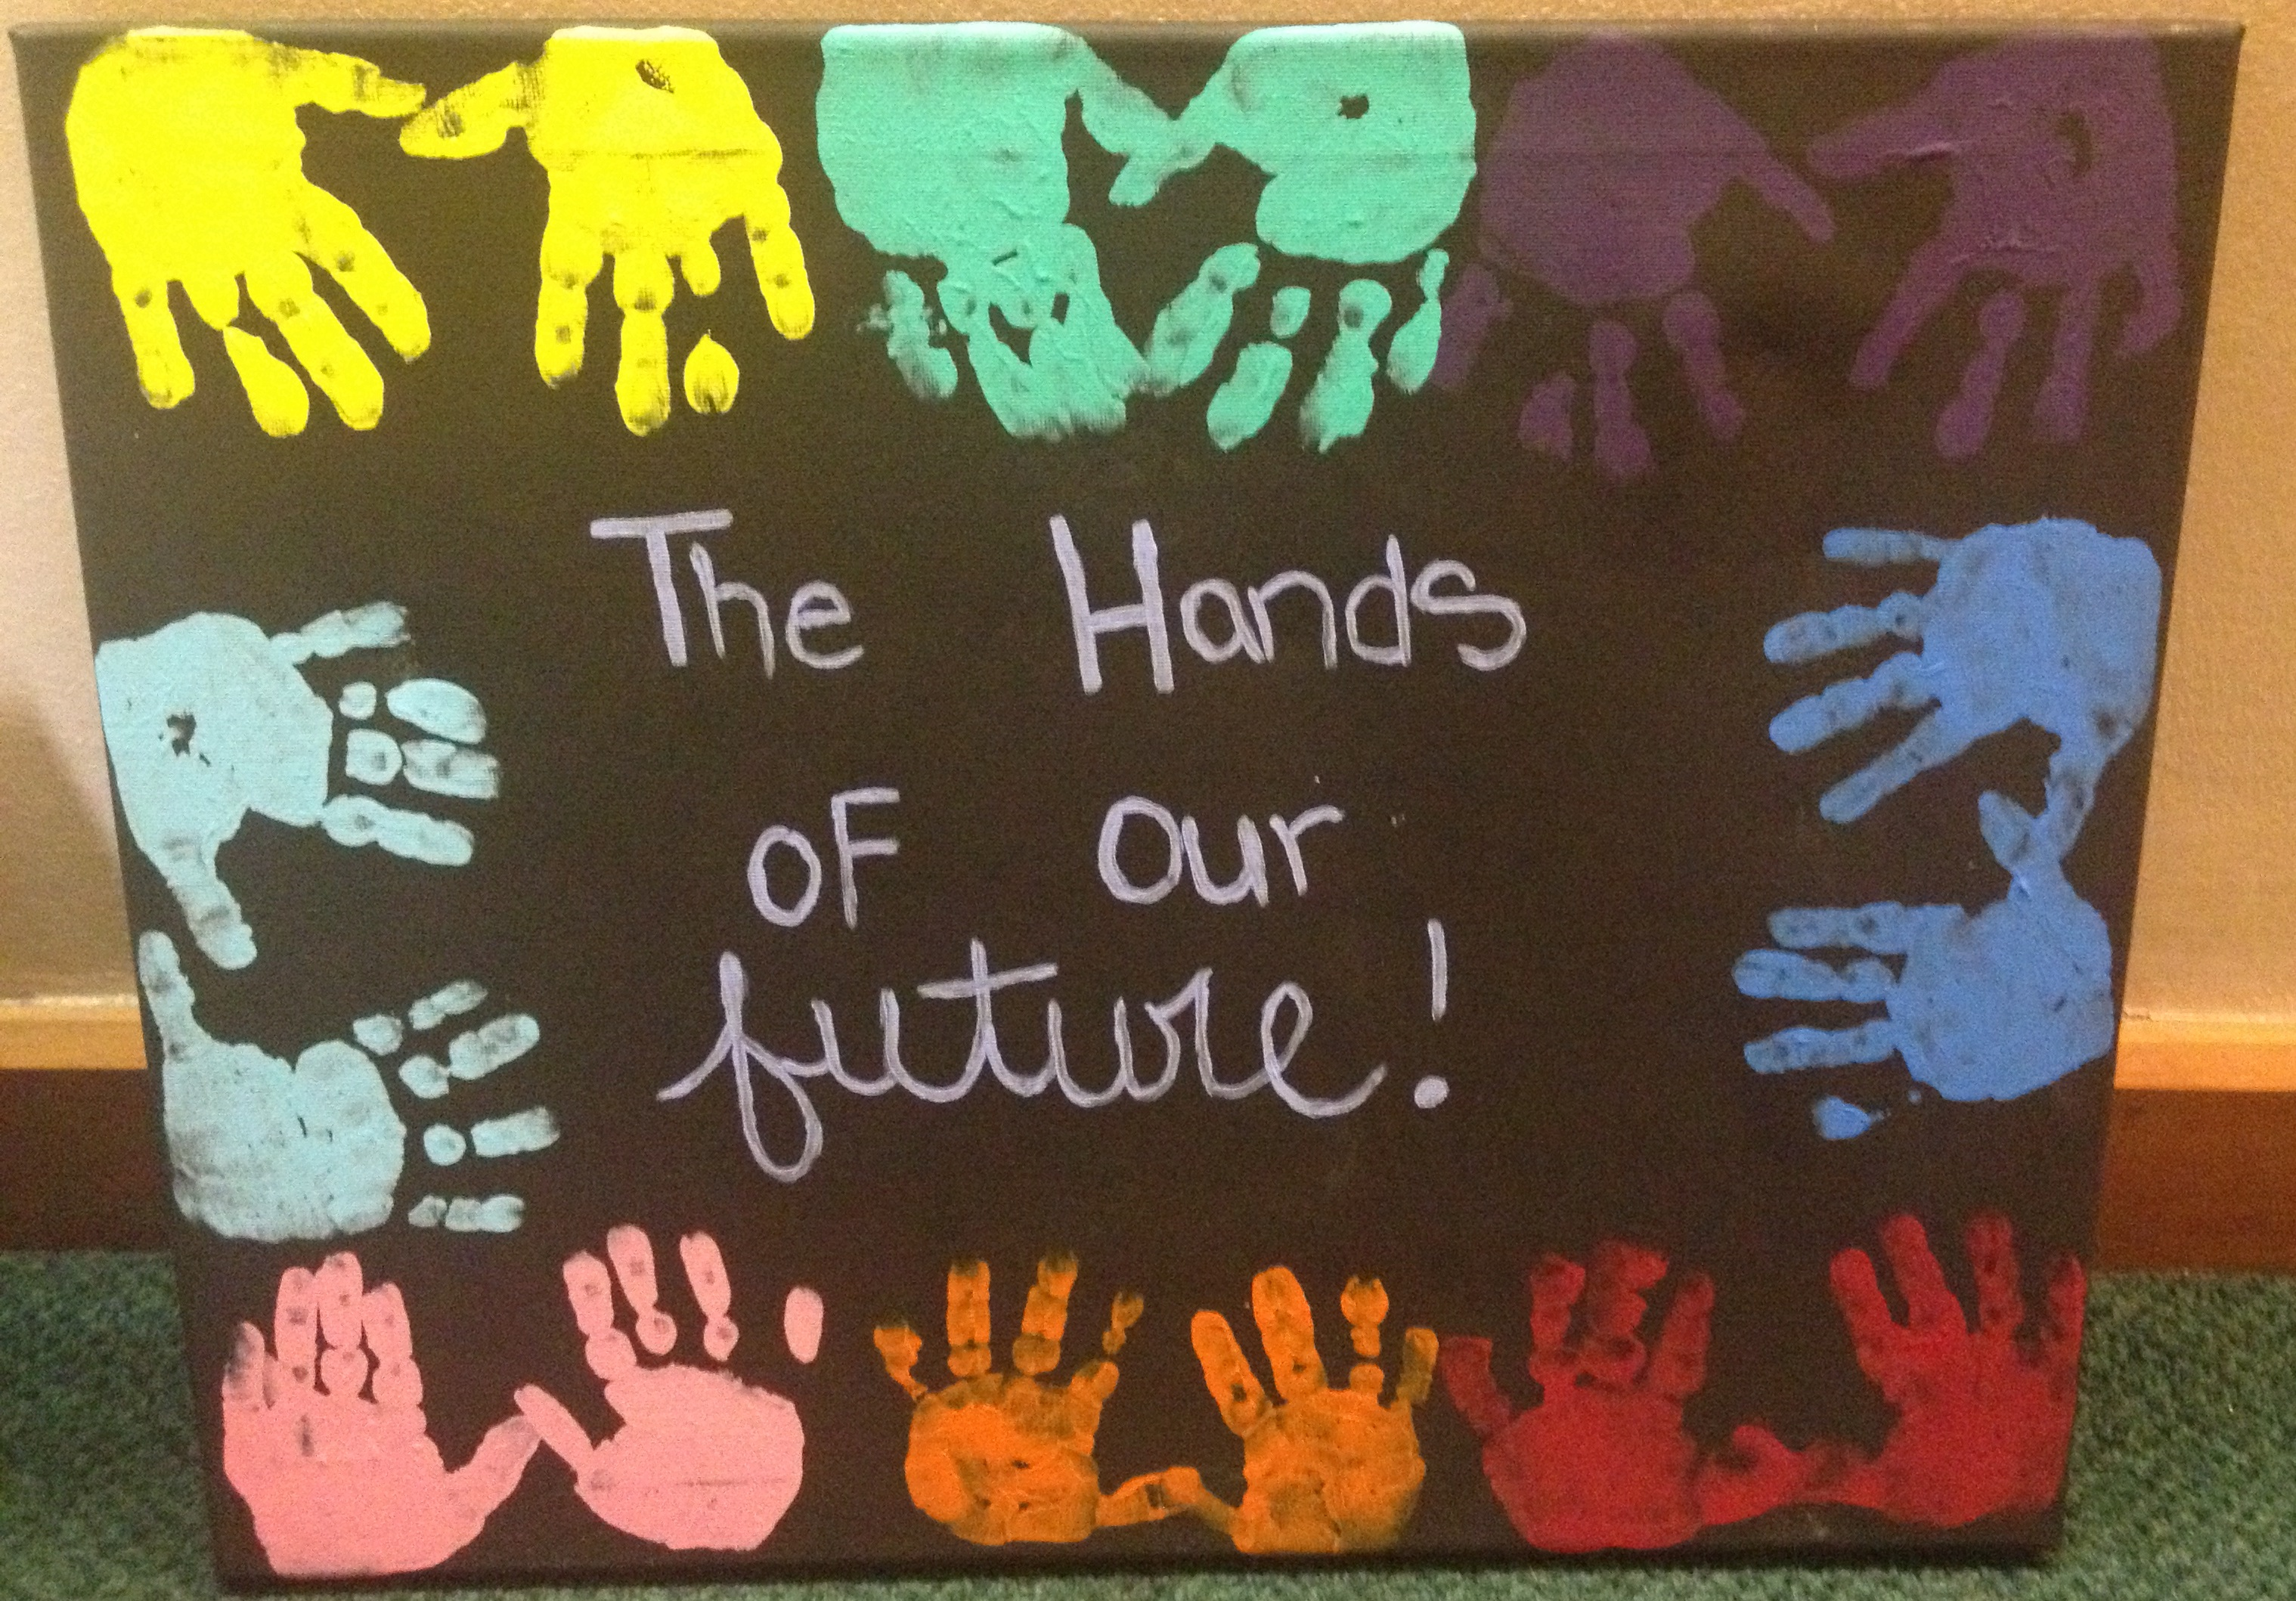 The Hands of Our Future